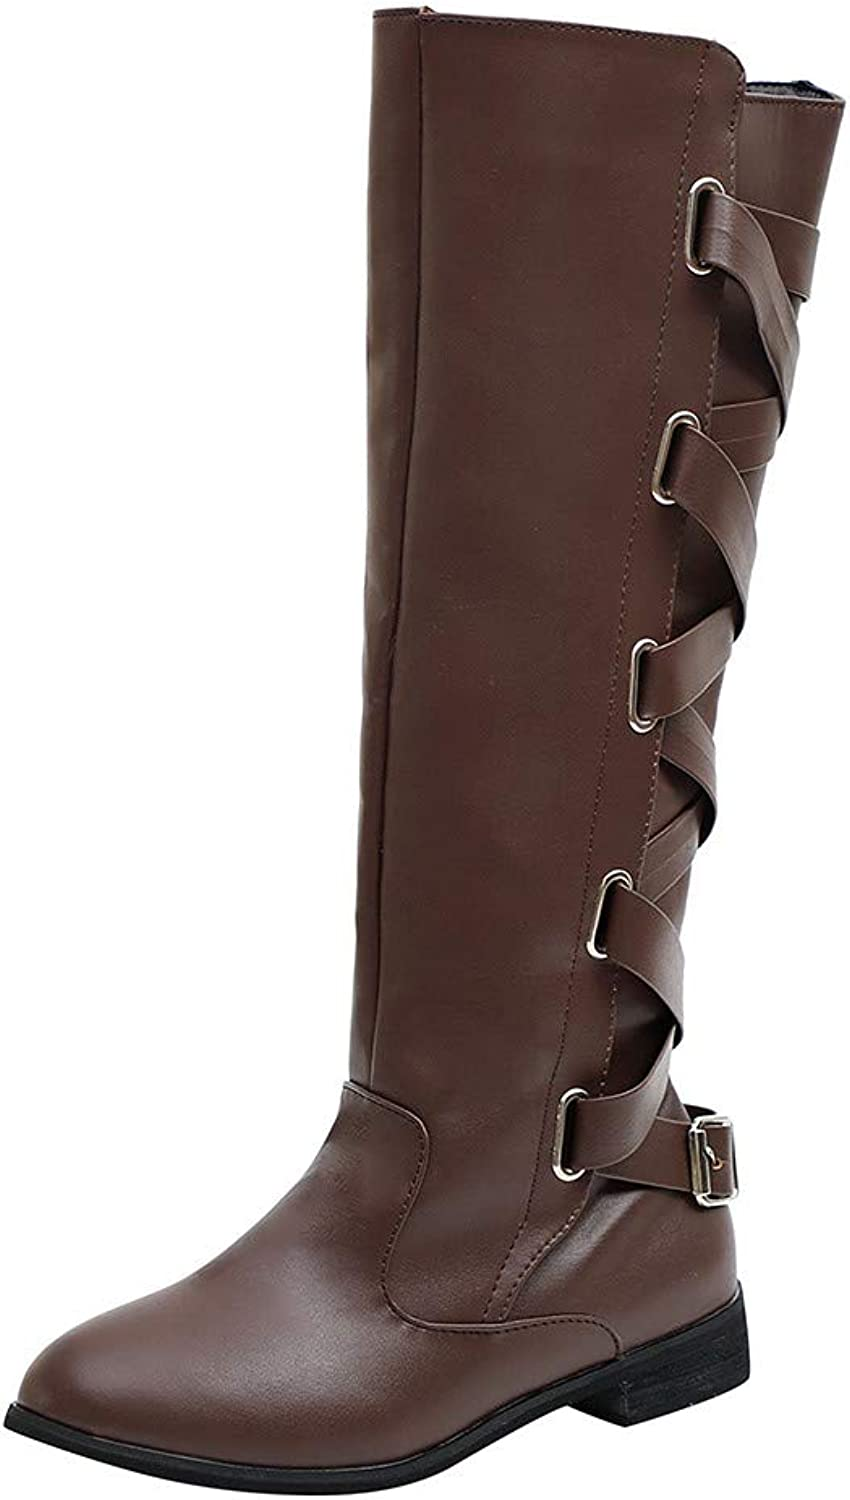 Amaping Womens Lace Up Buckle Over The Knee Stretch Martin Boots